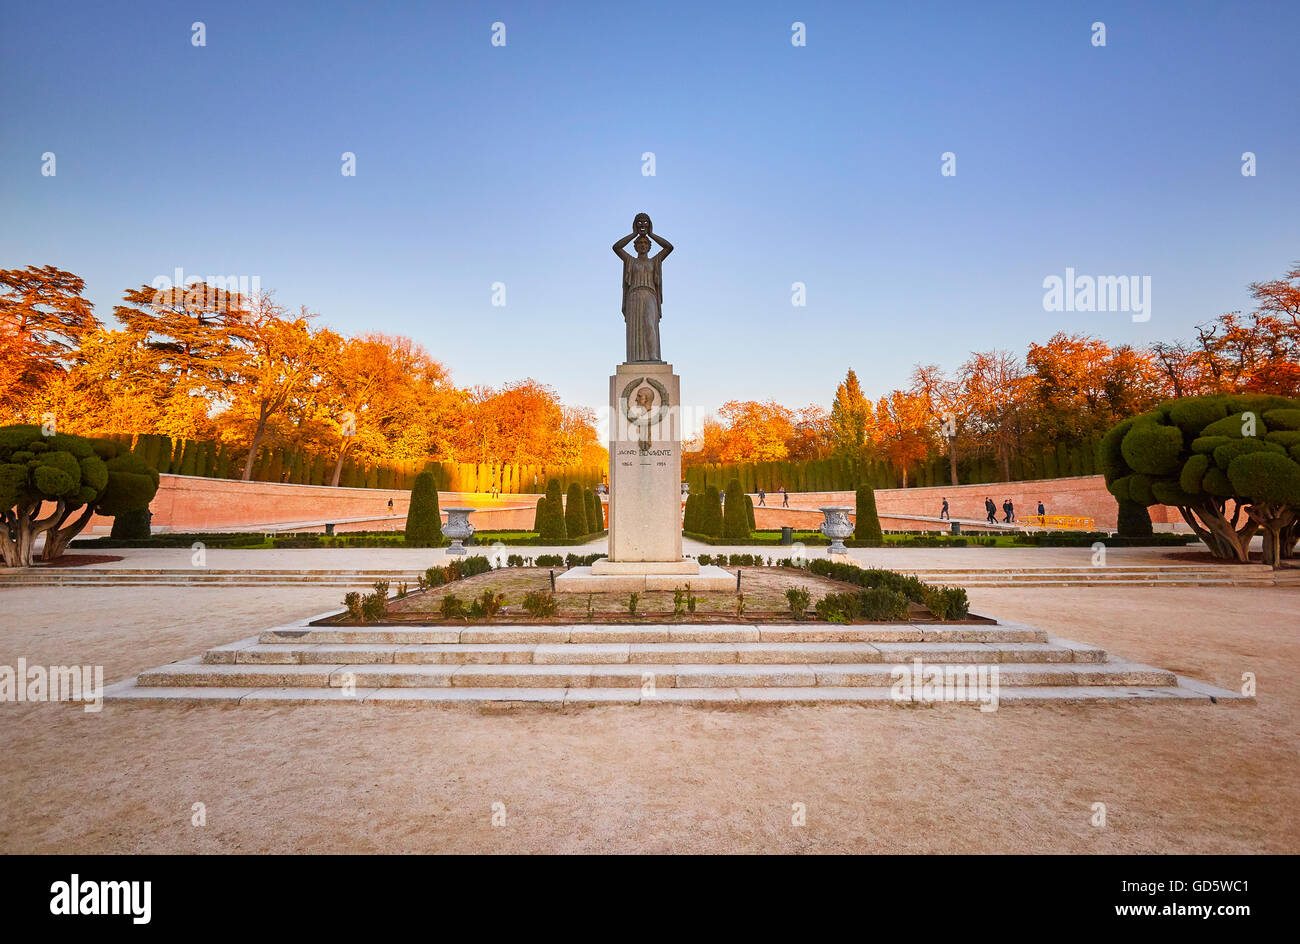 Monument to Benavente, by escultor Victorio Macho, and The Parterre, french-style garden at the Buen Retiro Park. - Stock Image